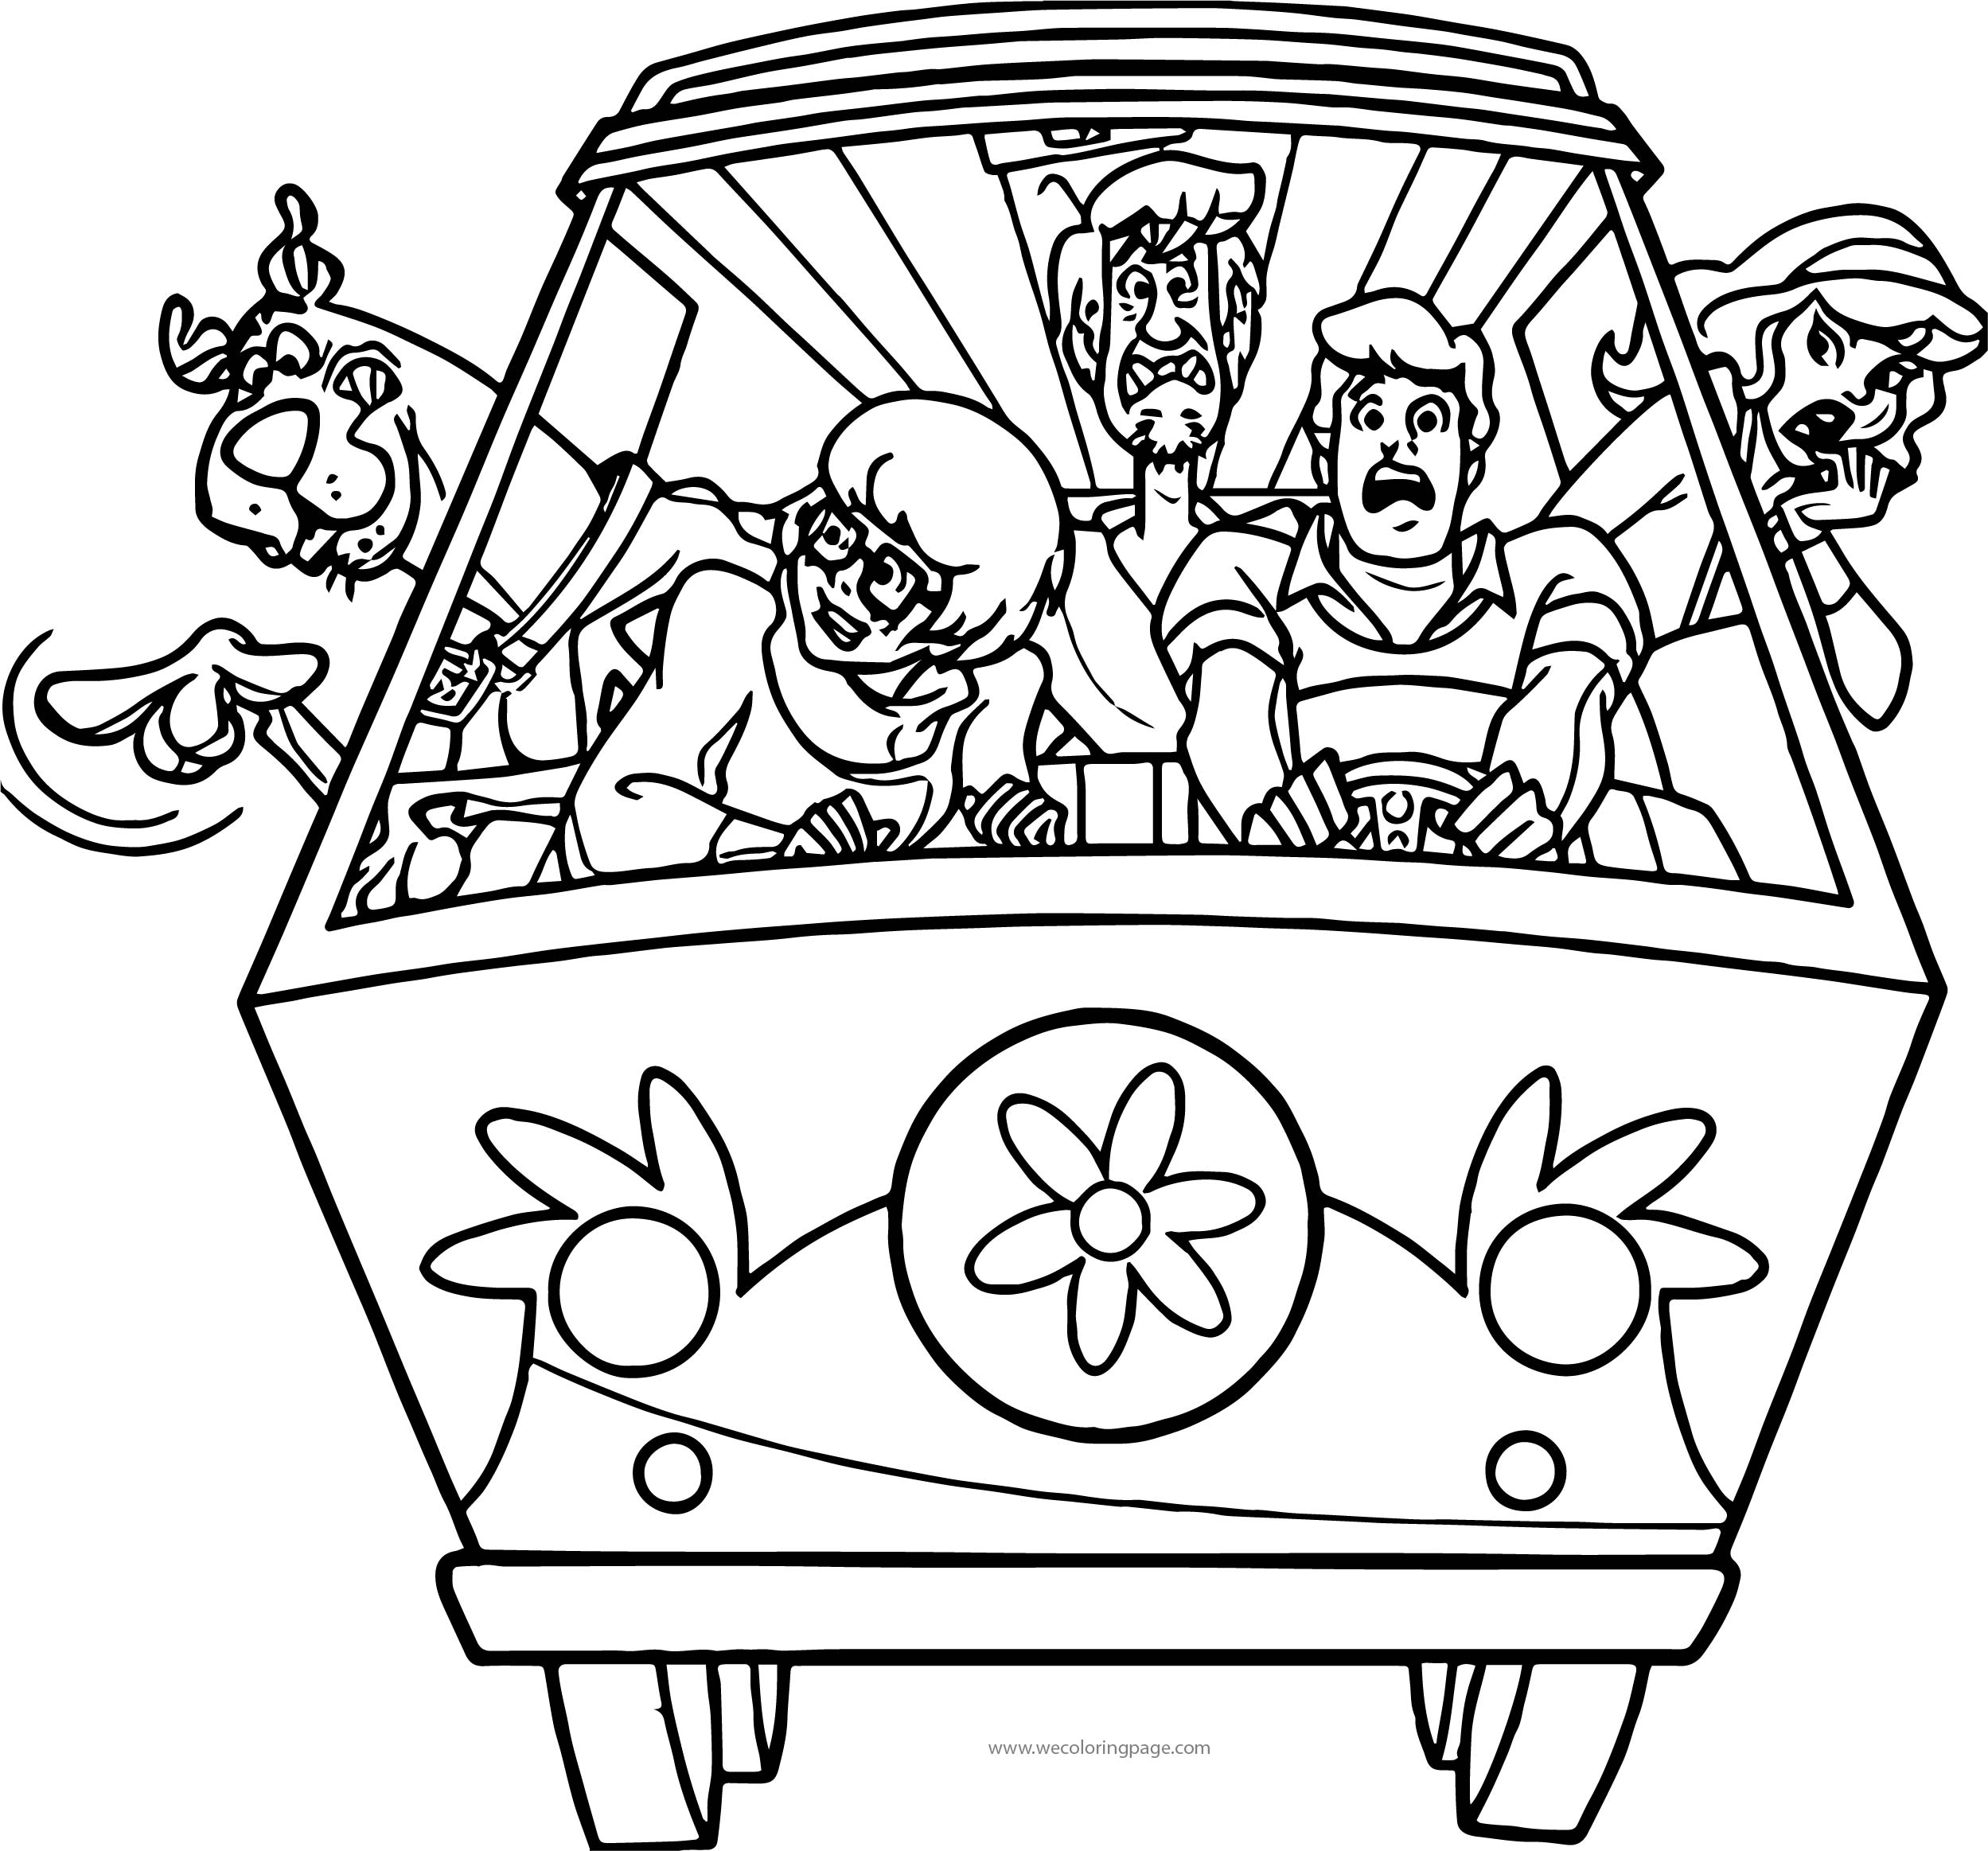 Front Car Scooby Doo Scream Coloring Page | Wecoloringpage.com